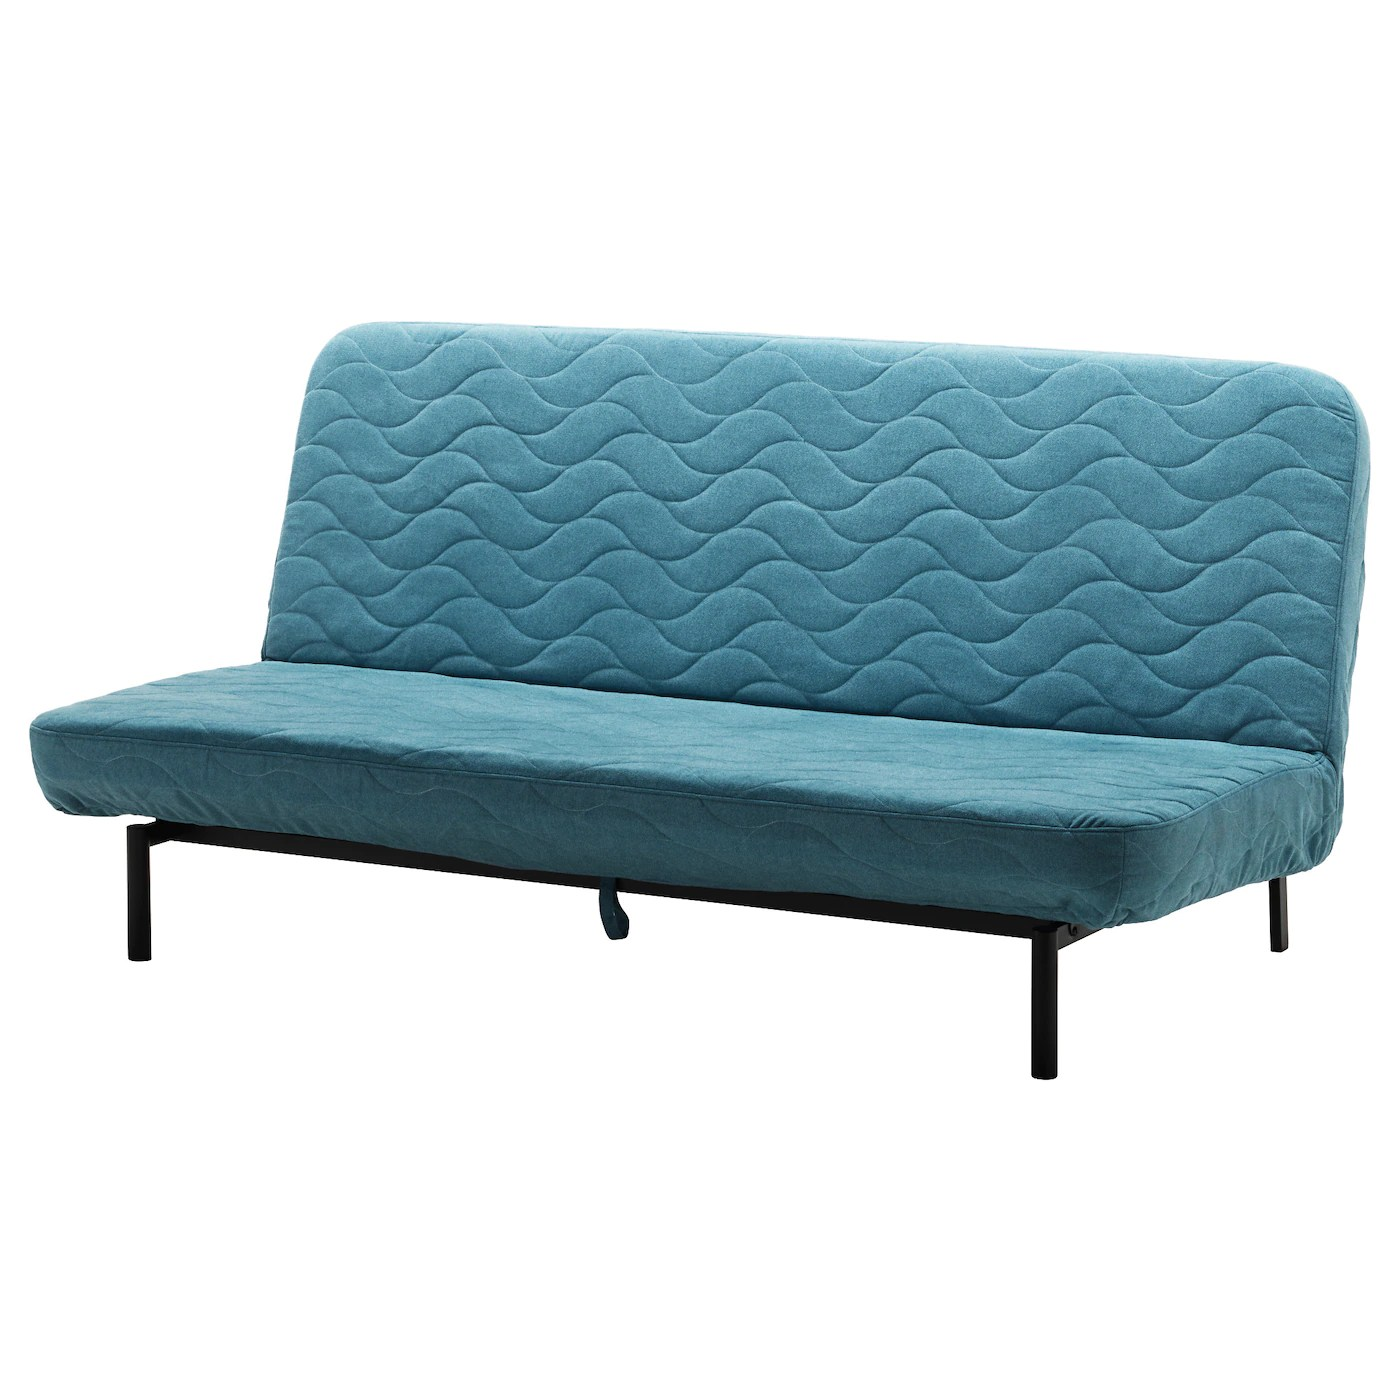 Ikea Sofa Bed Nyhamn 3 Seat Sofa Bed With Foam Mattress Borred Green Blue